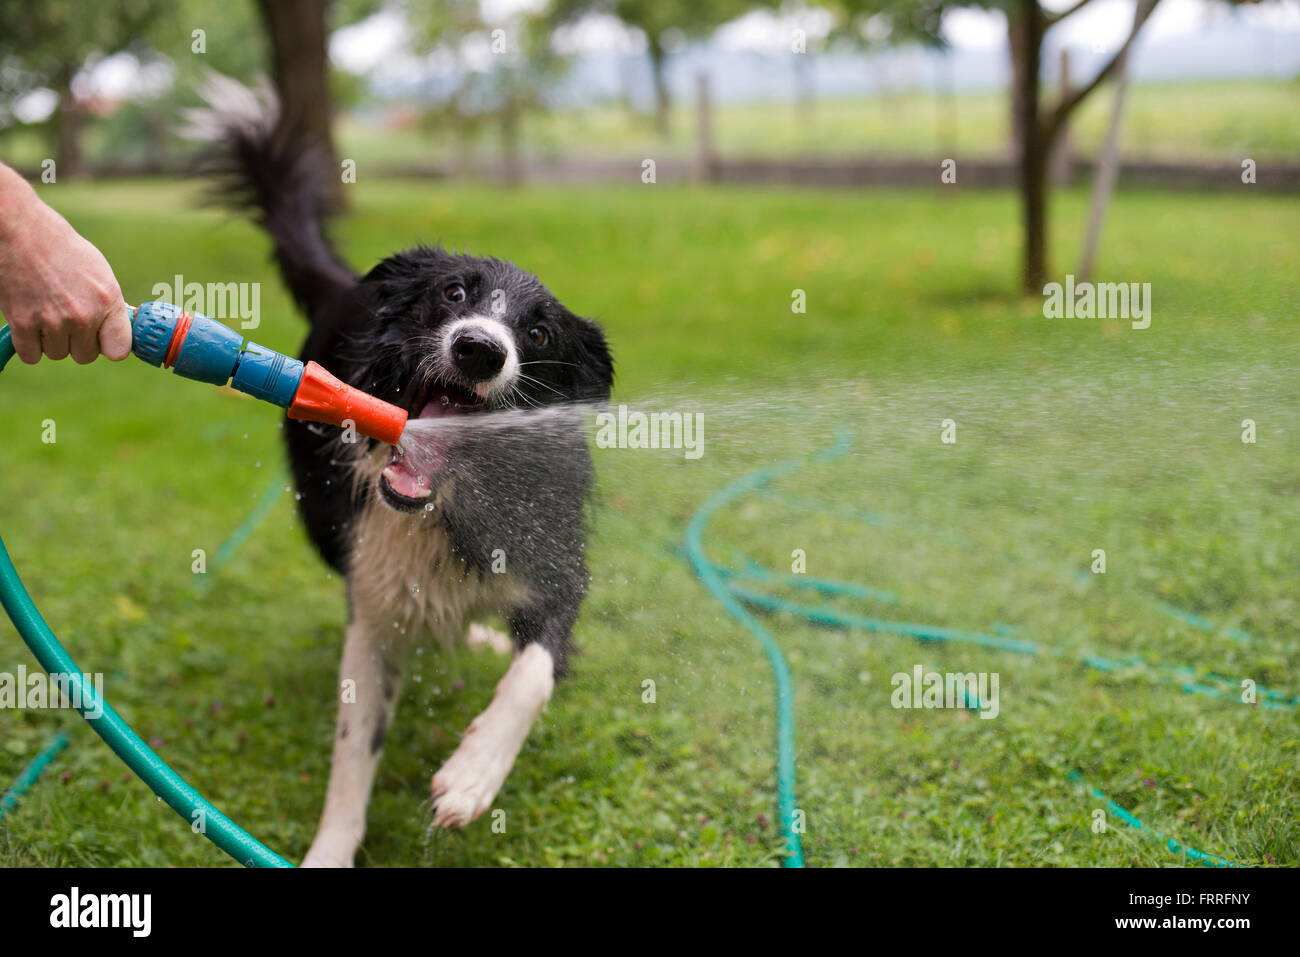 A dog playing with water from a garden hose. Stock Photo